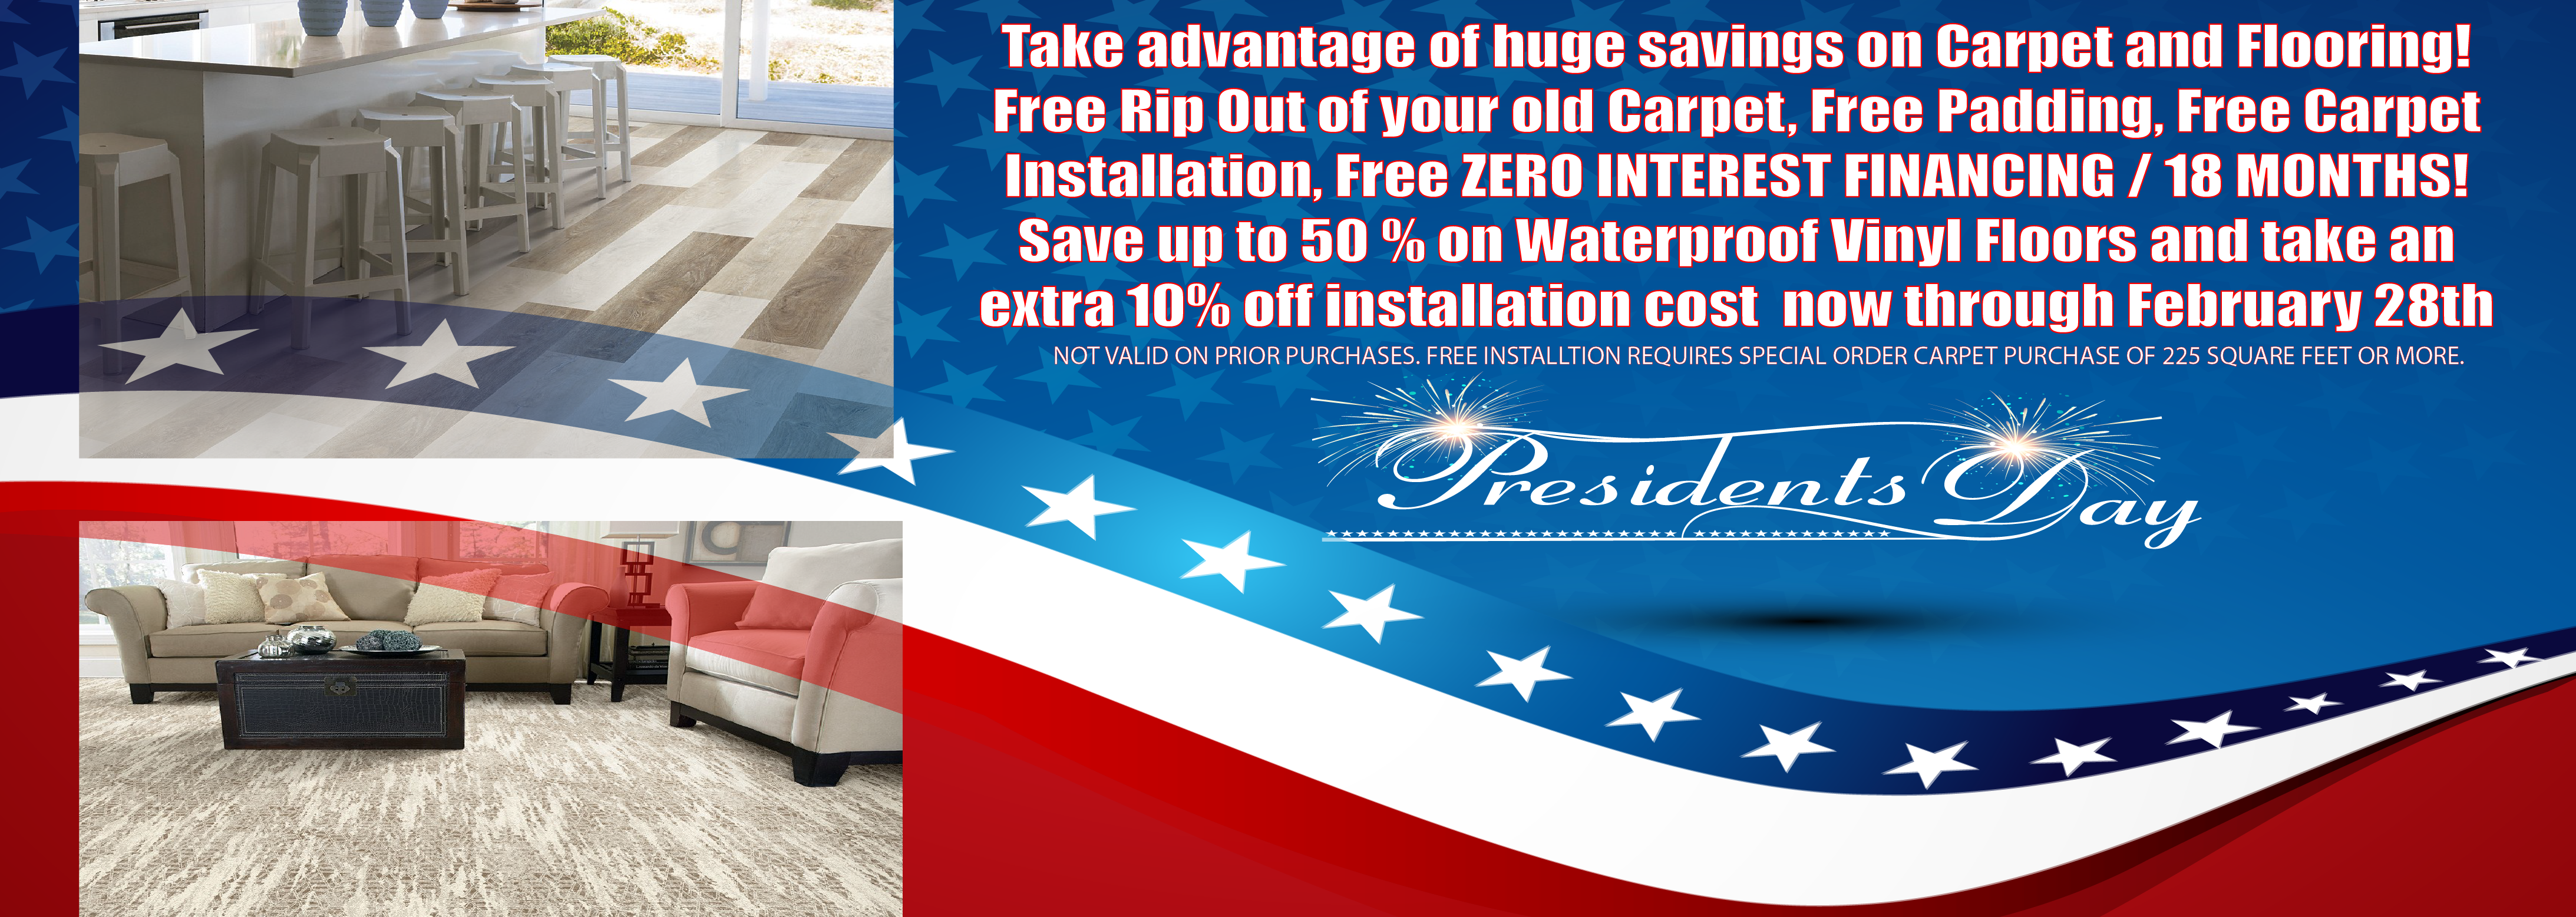 presidents day carpet sale, presidents day flooring sale. free carpet estimates, free flooring estimates